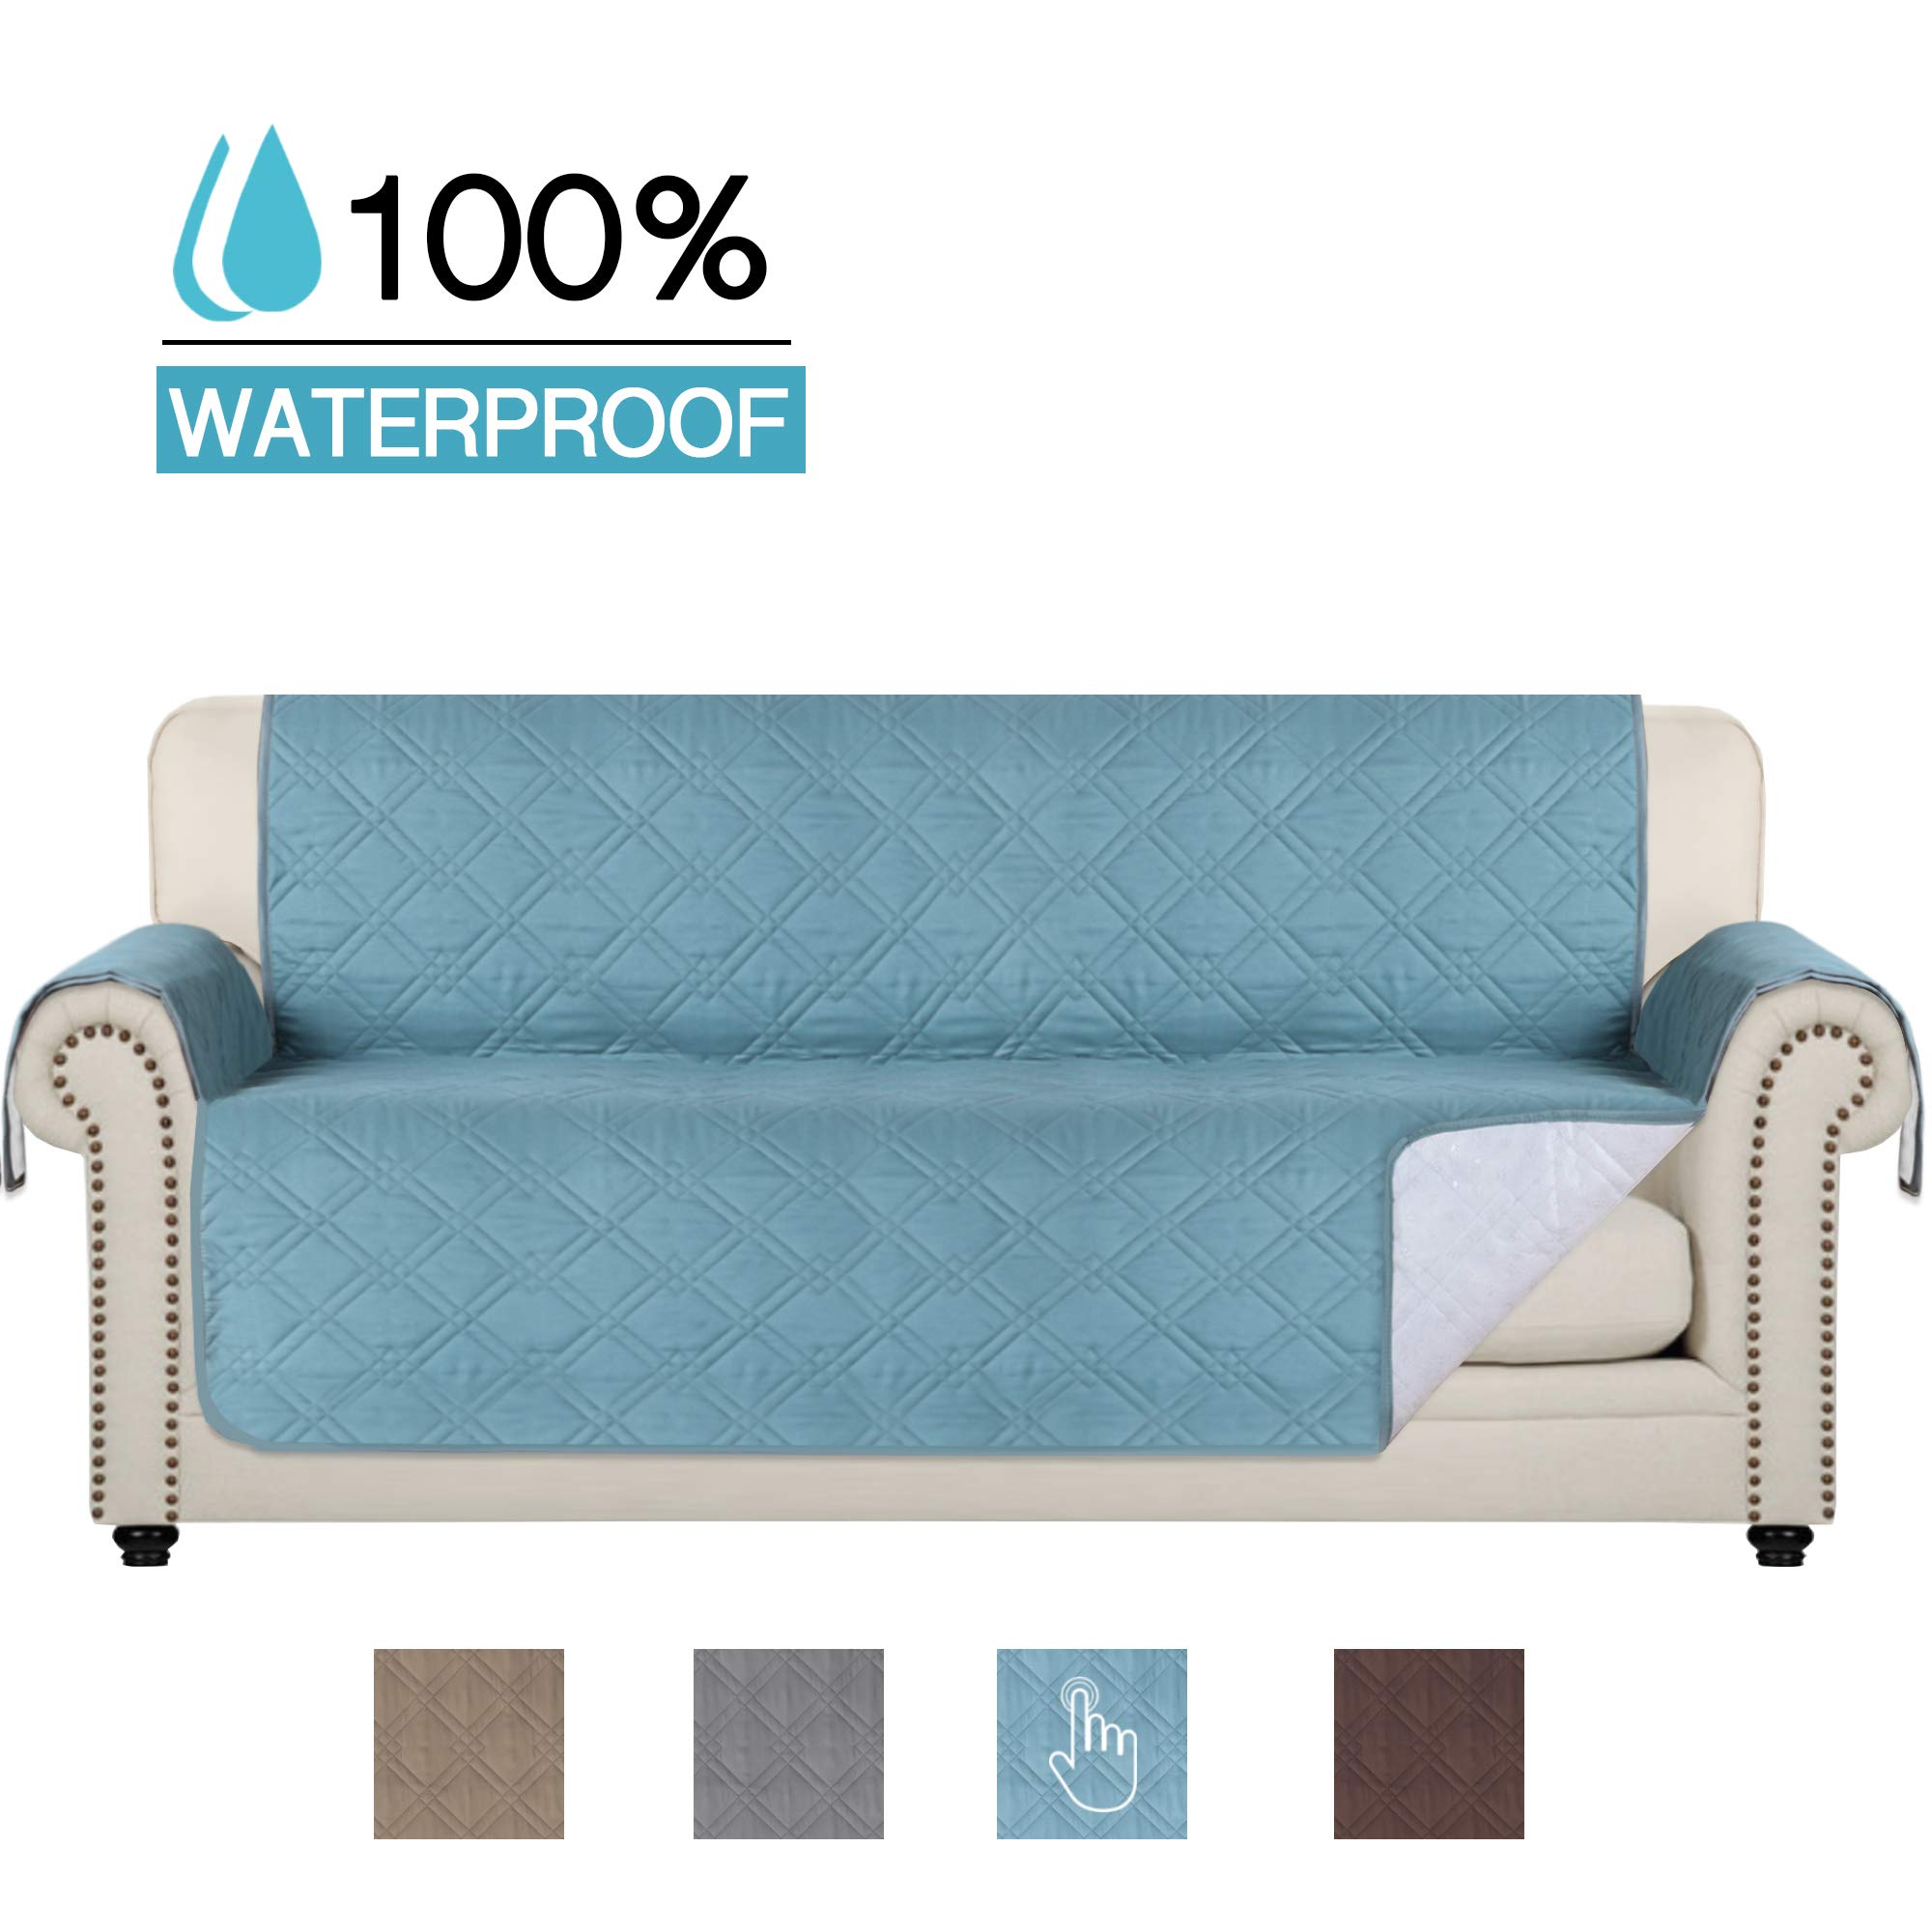 Flamingo P Deluxe Reversible Quilted Furniture Protector Water-Resistant Pets Slipcover Machine Washable(Oversized Sofa: Stone Blue) - 86'' X 132''